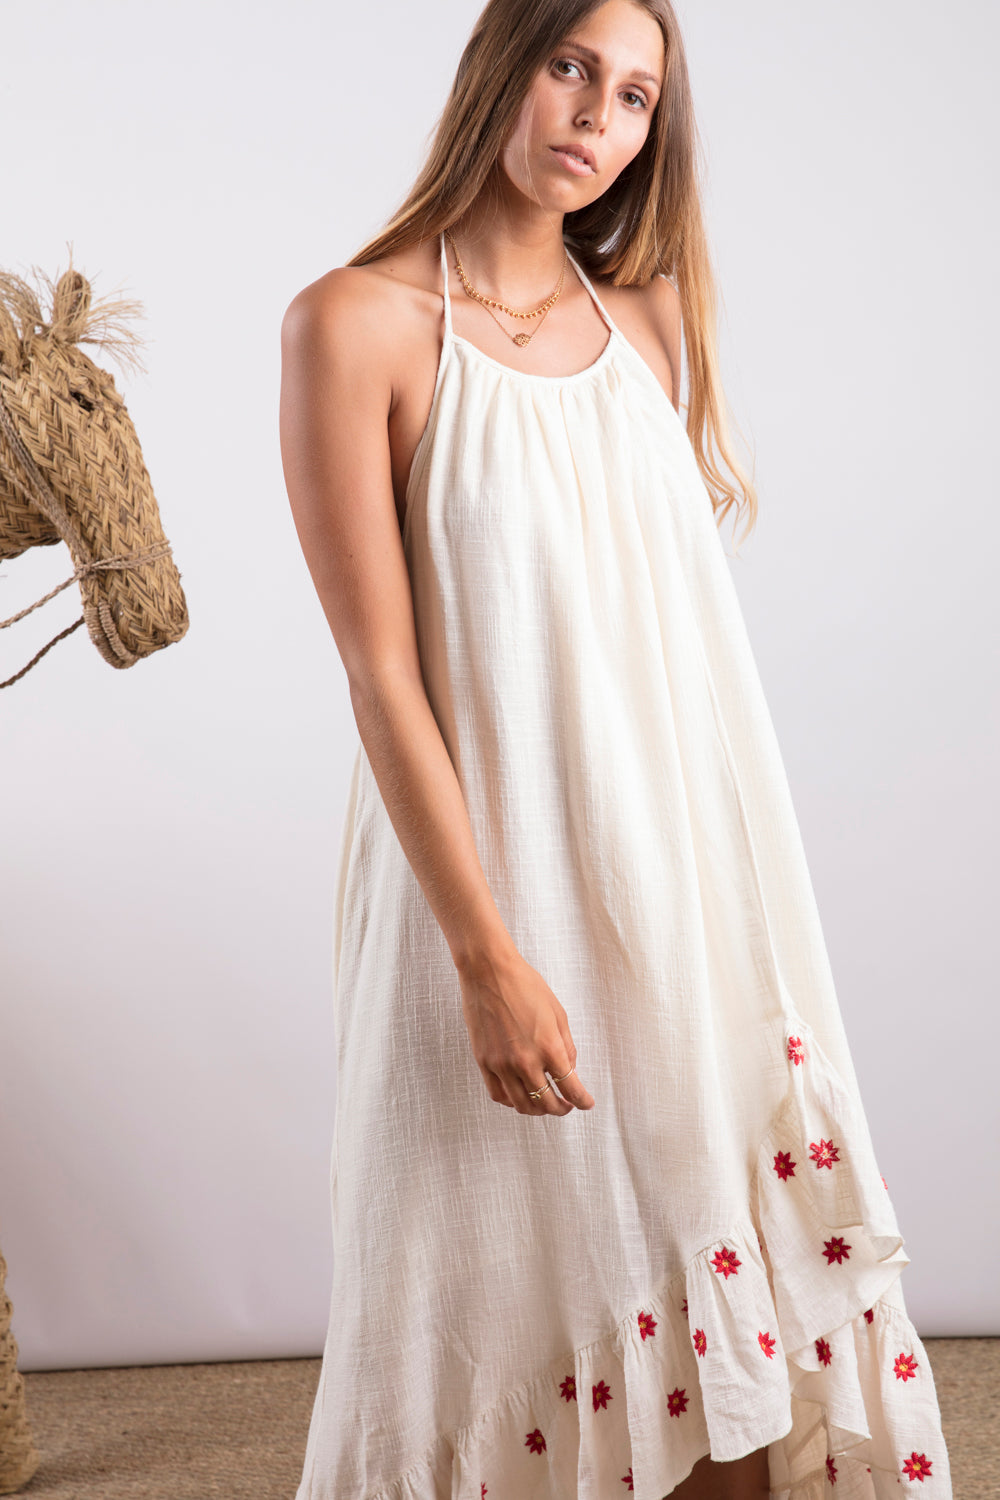 Sundress.fr Alice Off-White and Daisies Embroideries Maxi Beach Dres